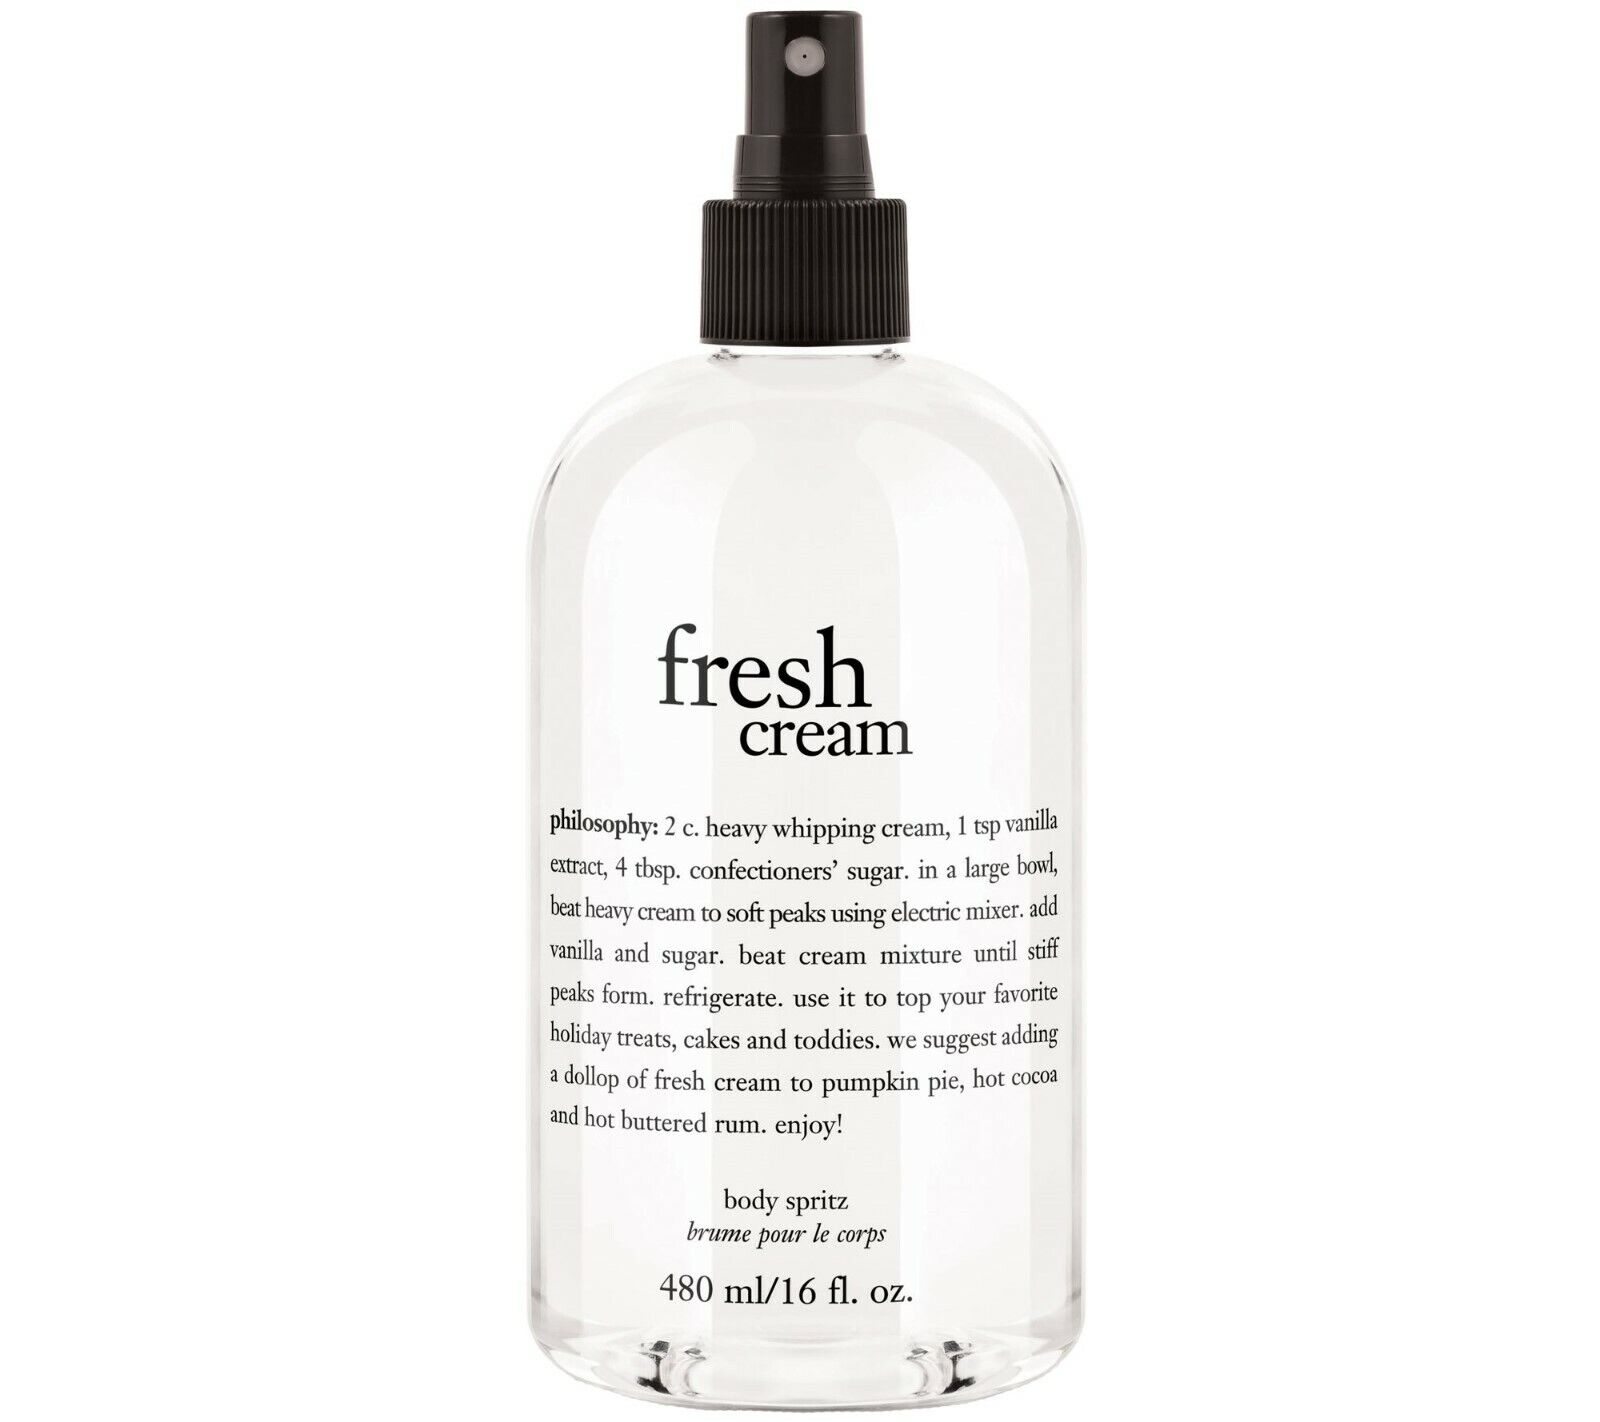 Philosophy Fresh Cream Body Spritz 16 Fl Oz with Pump